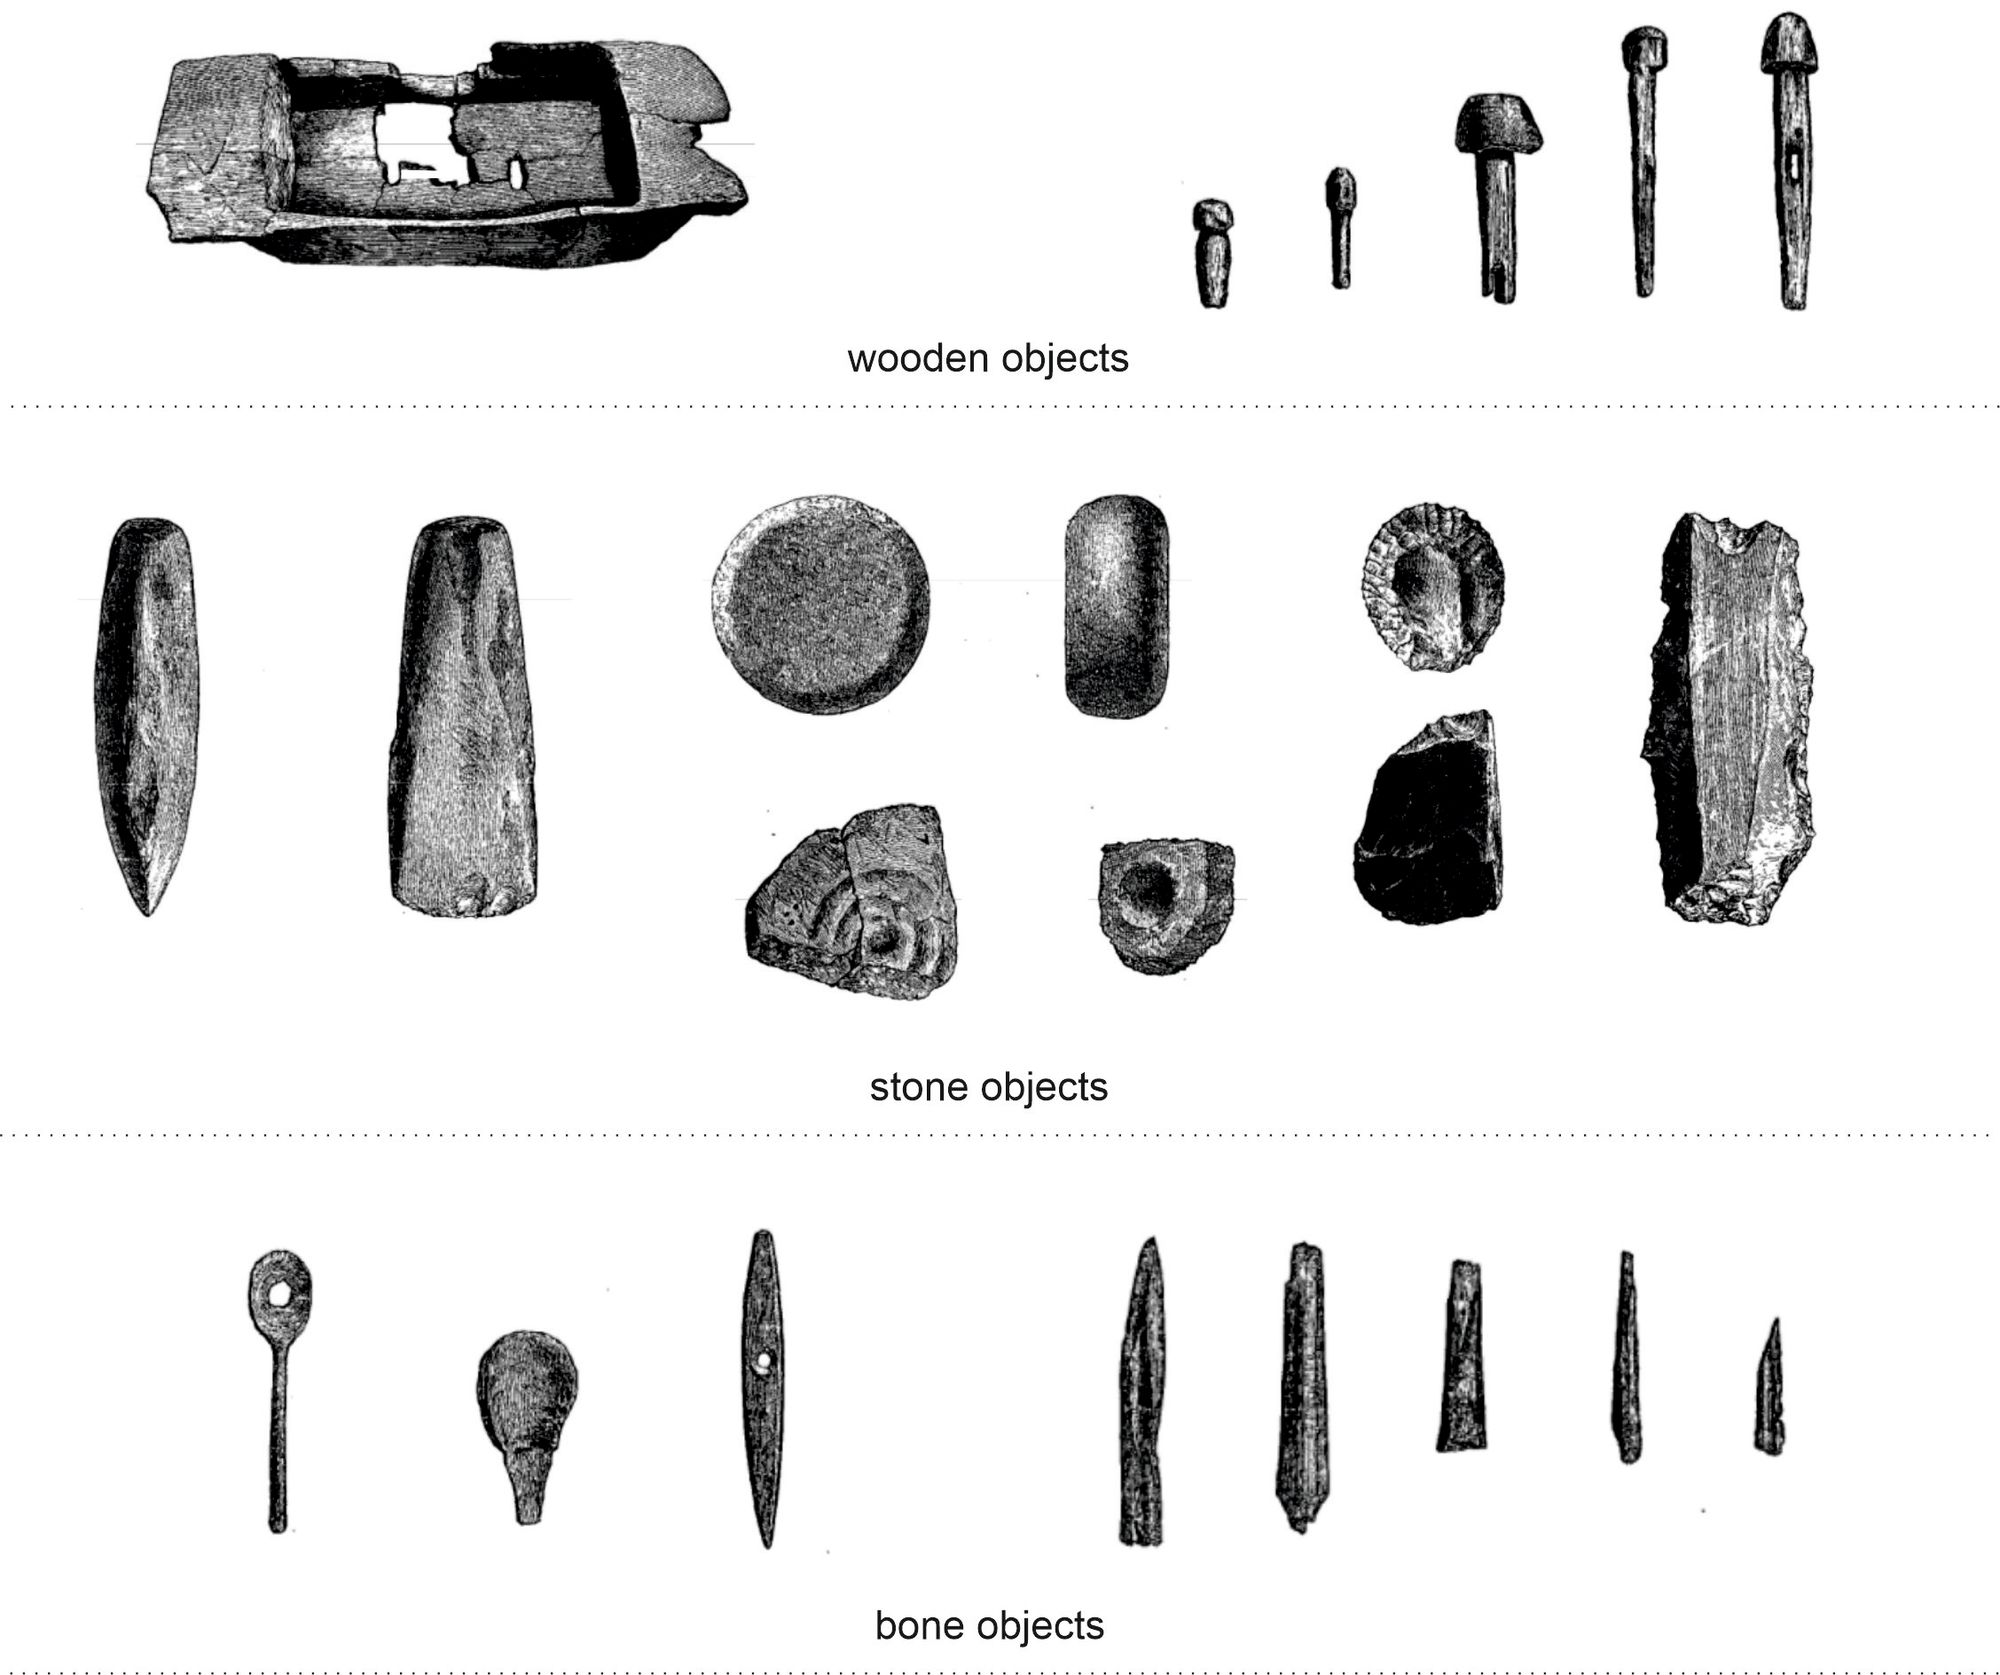 Figure 3. Some of the many objects recovered during the excavation of Lochlee crannog by Dr Robert Munro (1878-79).  Includes wooden nails, stone beads and weapons, as well as bone needles and spoons.